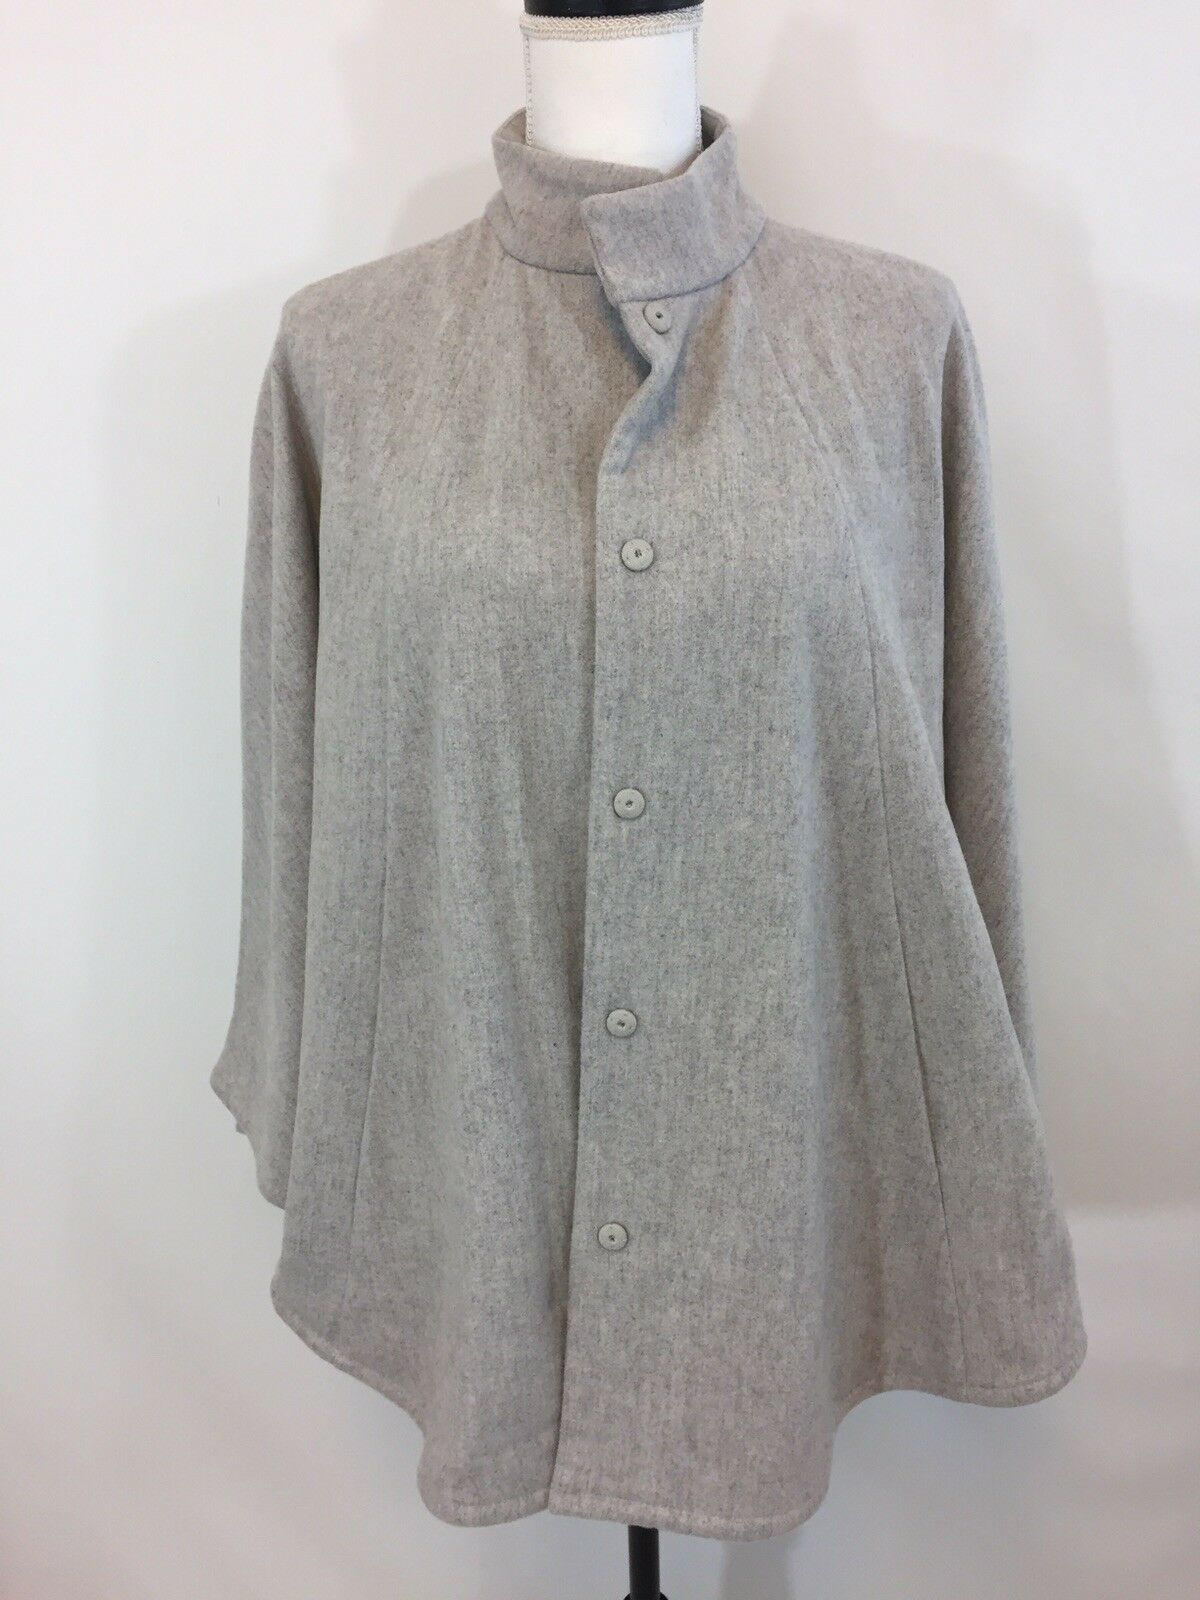 NEW EILEEN FISHER WOMENS COTTON PONCHO COAT LIGHT GREY SZ S